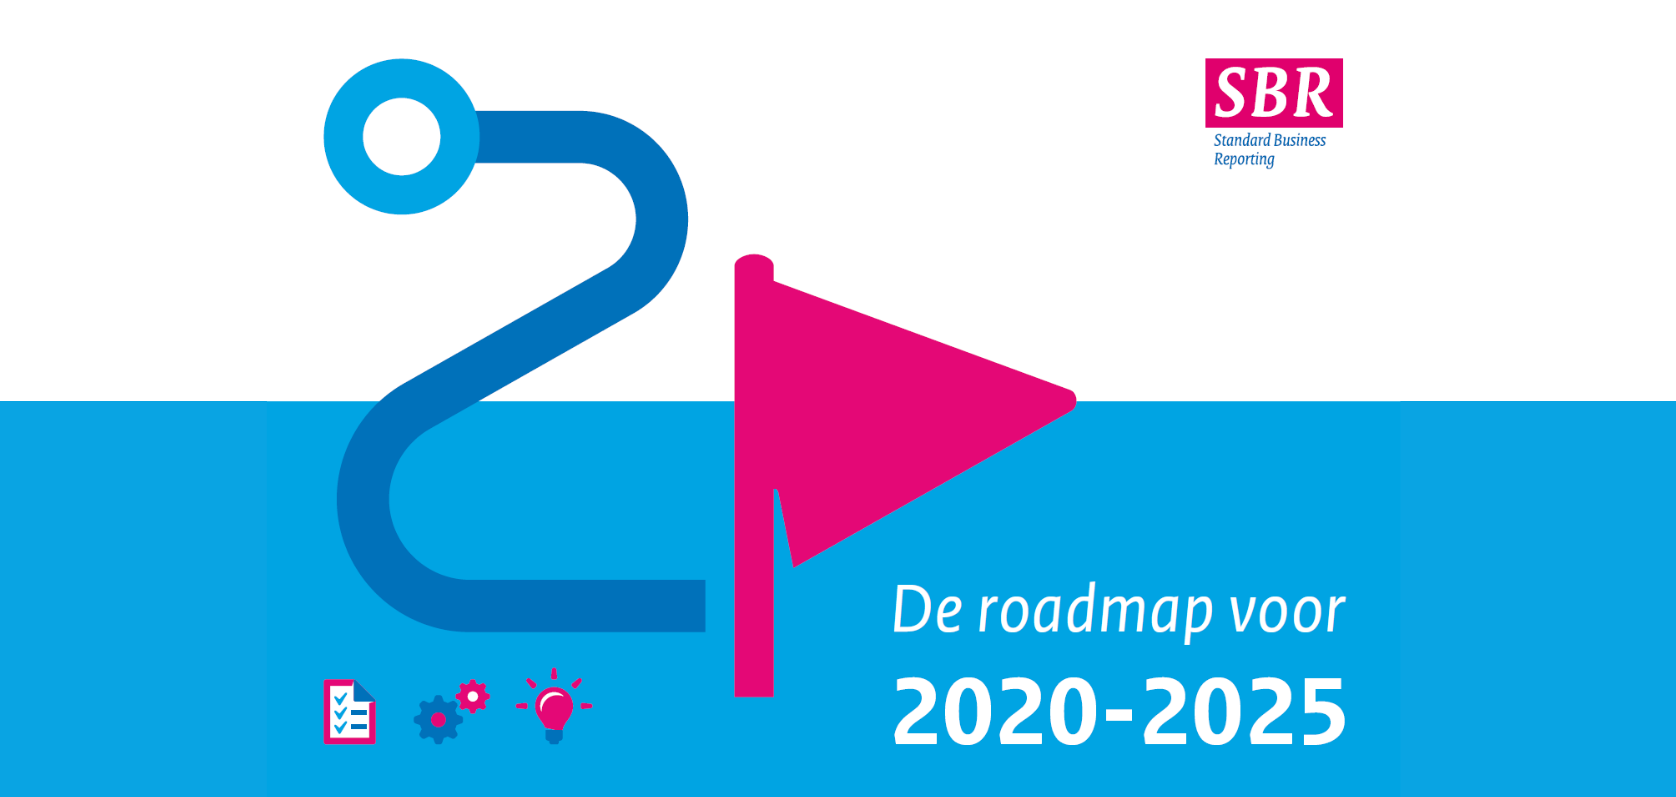 De SBR Roadmap 2020-2025